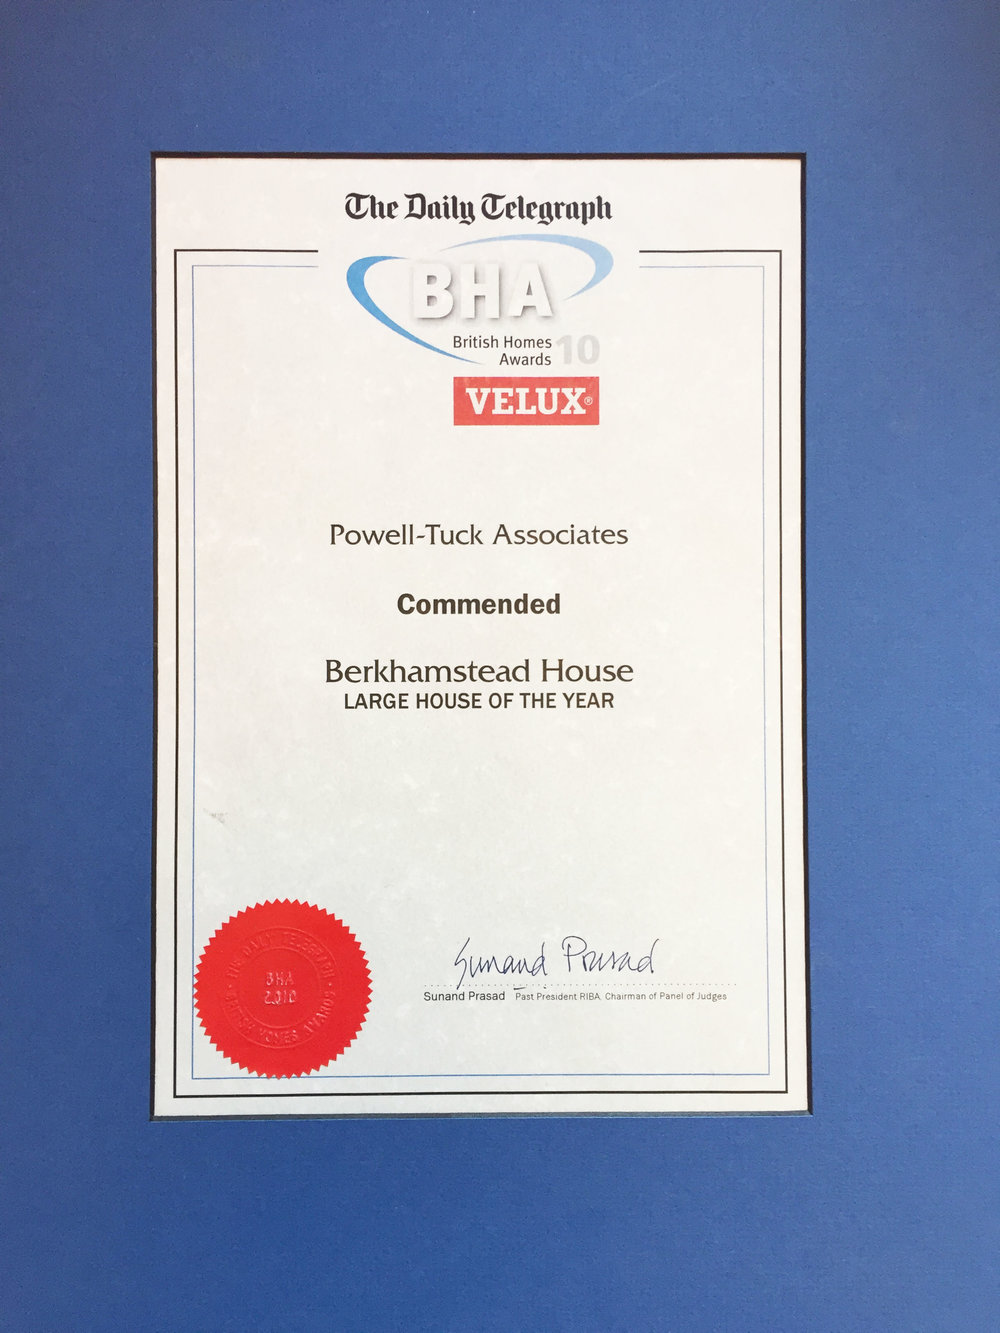 British Homes Awards,Commended,Large House of the Year - Berkhamstead House, 2010